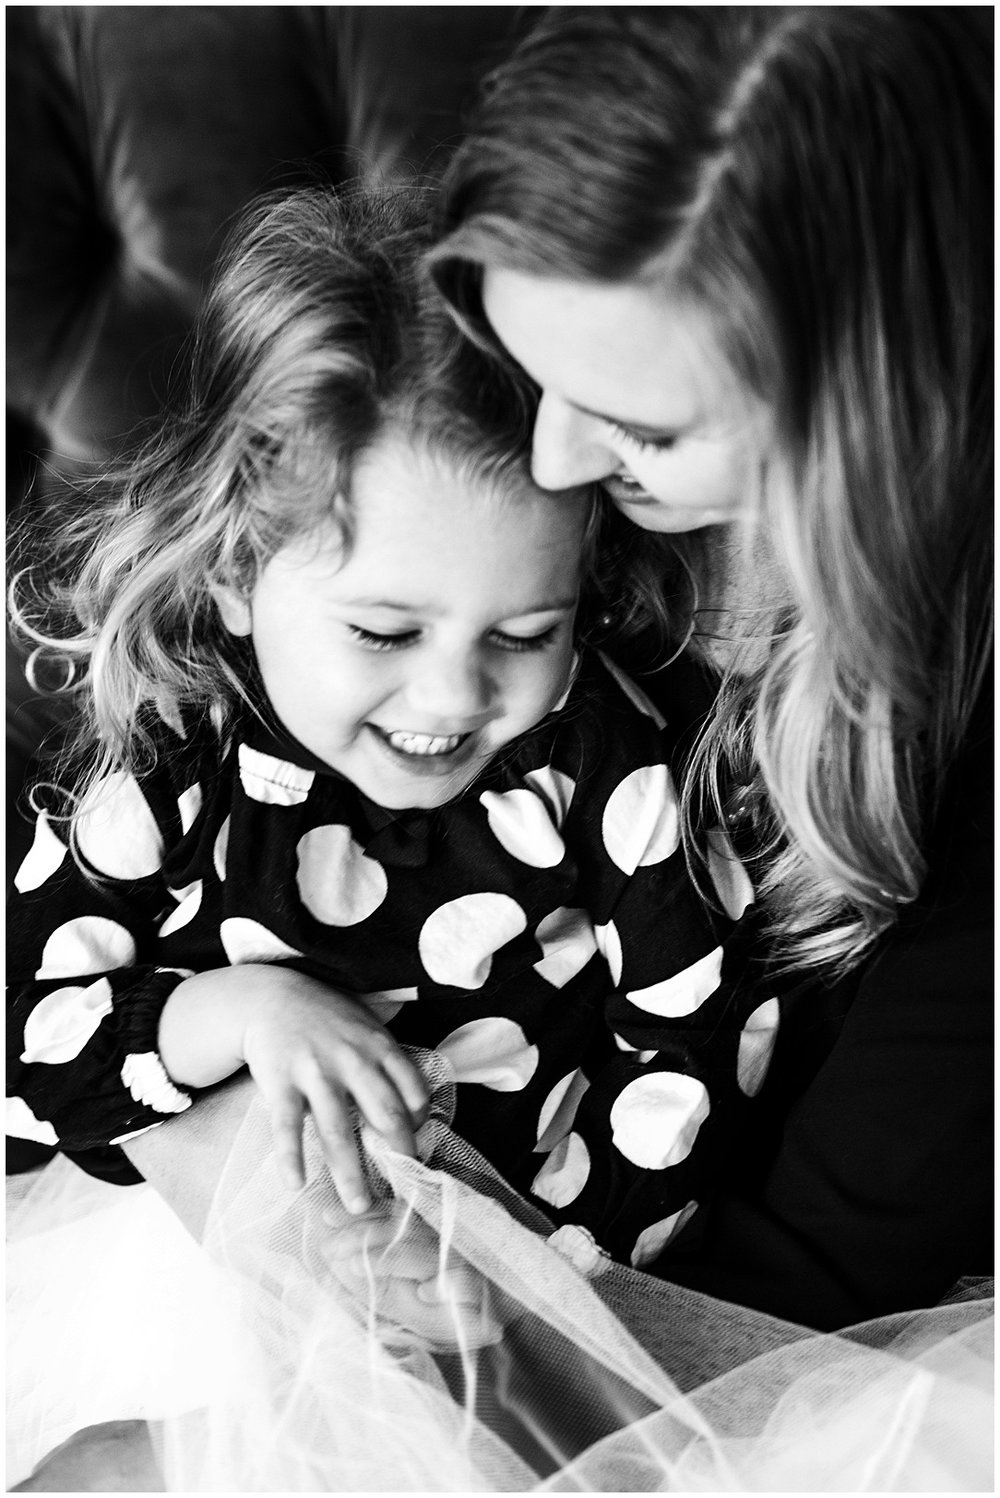 Tessa_marie_photography_family_portrait_photographer_mother_daughter_family_sessions_timeless_elegance_Vogue_magazine_style_portraits_contemporary_portraits_0149.jpg